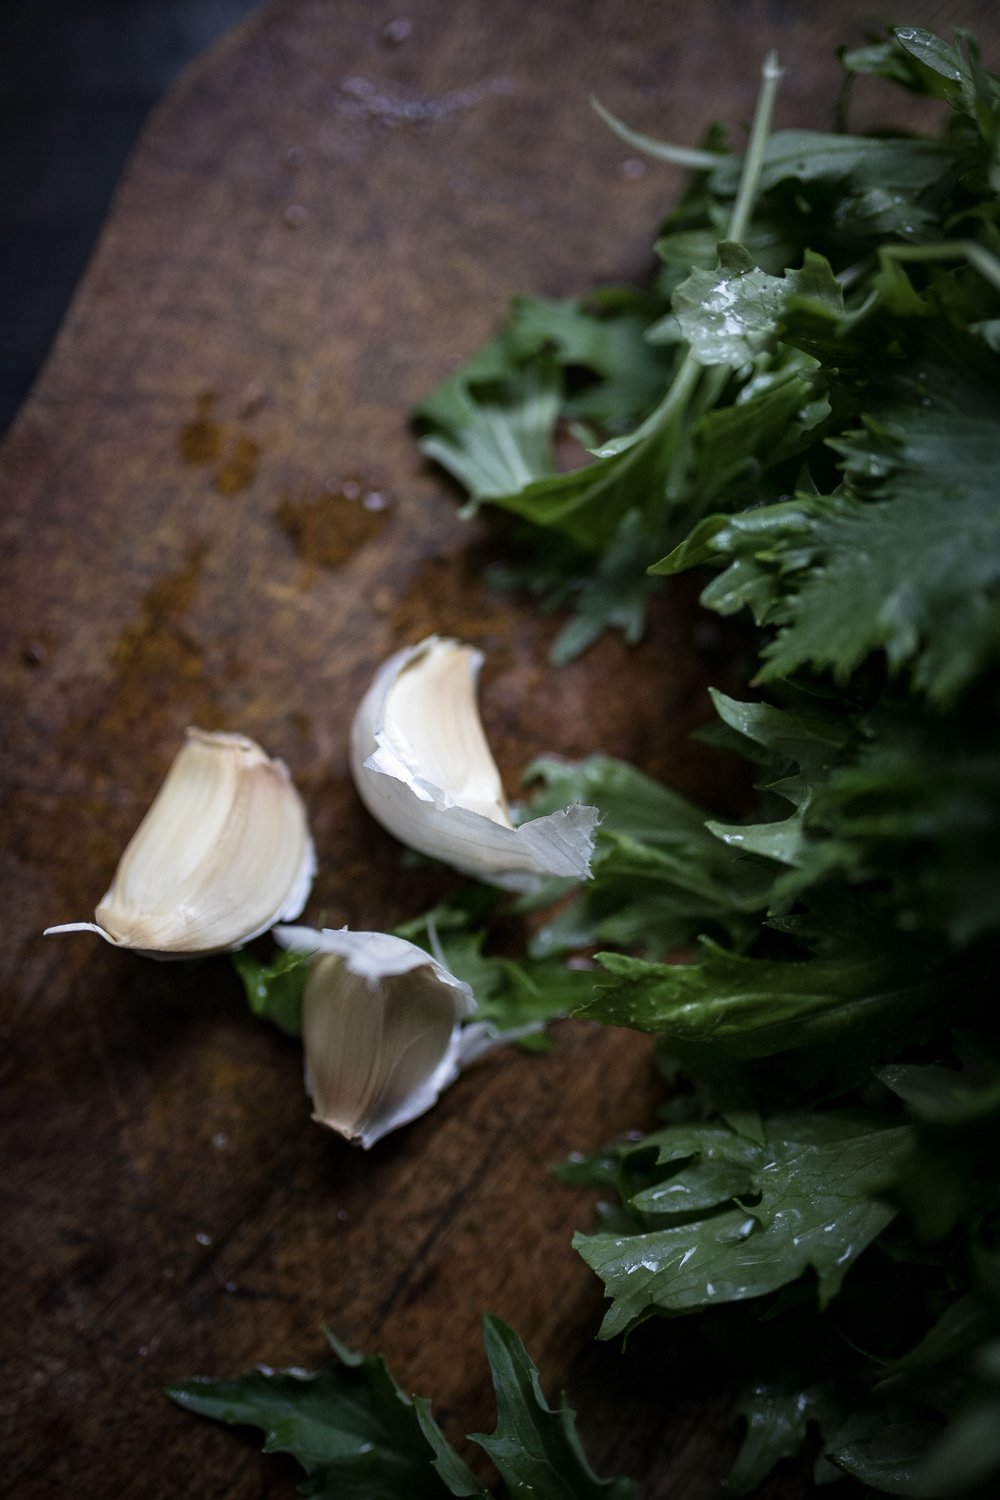 Garlic is imperative here, but if you want a little less intense of a pesto, add only two cloves